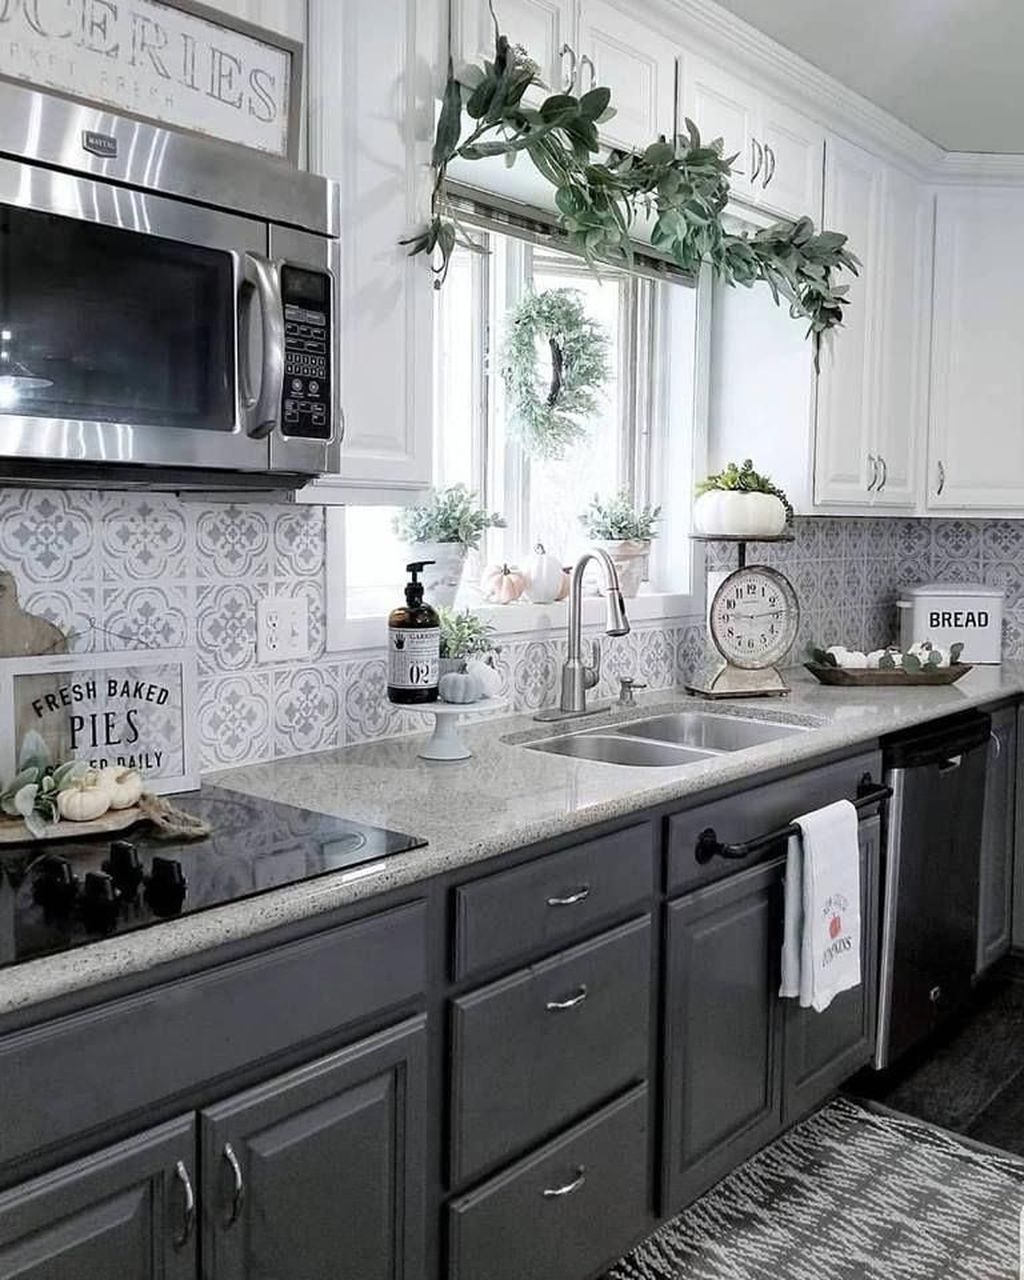 32 Fabulous Grey Kitchen Cabinets You Will Love Homepiez In 2020 Kitchen Renovation Beautiful Kitchen Cabinets Kitchen Remodel